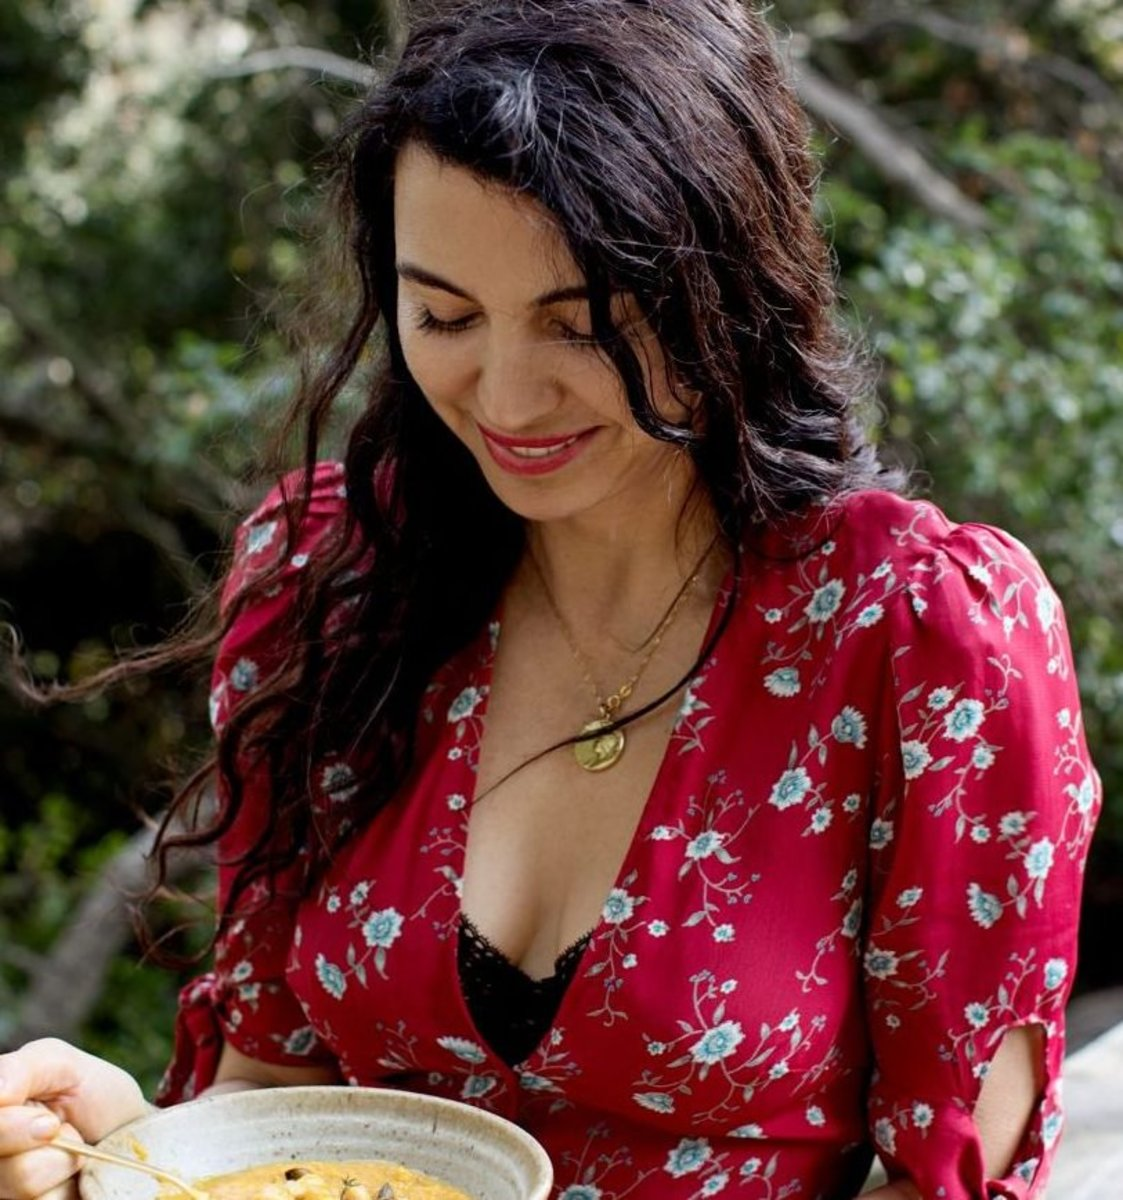 A Day in the Life of Holistic Lifestyle Guru Shiva Rose